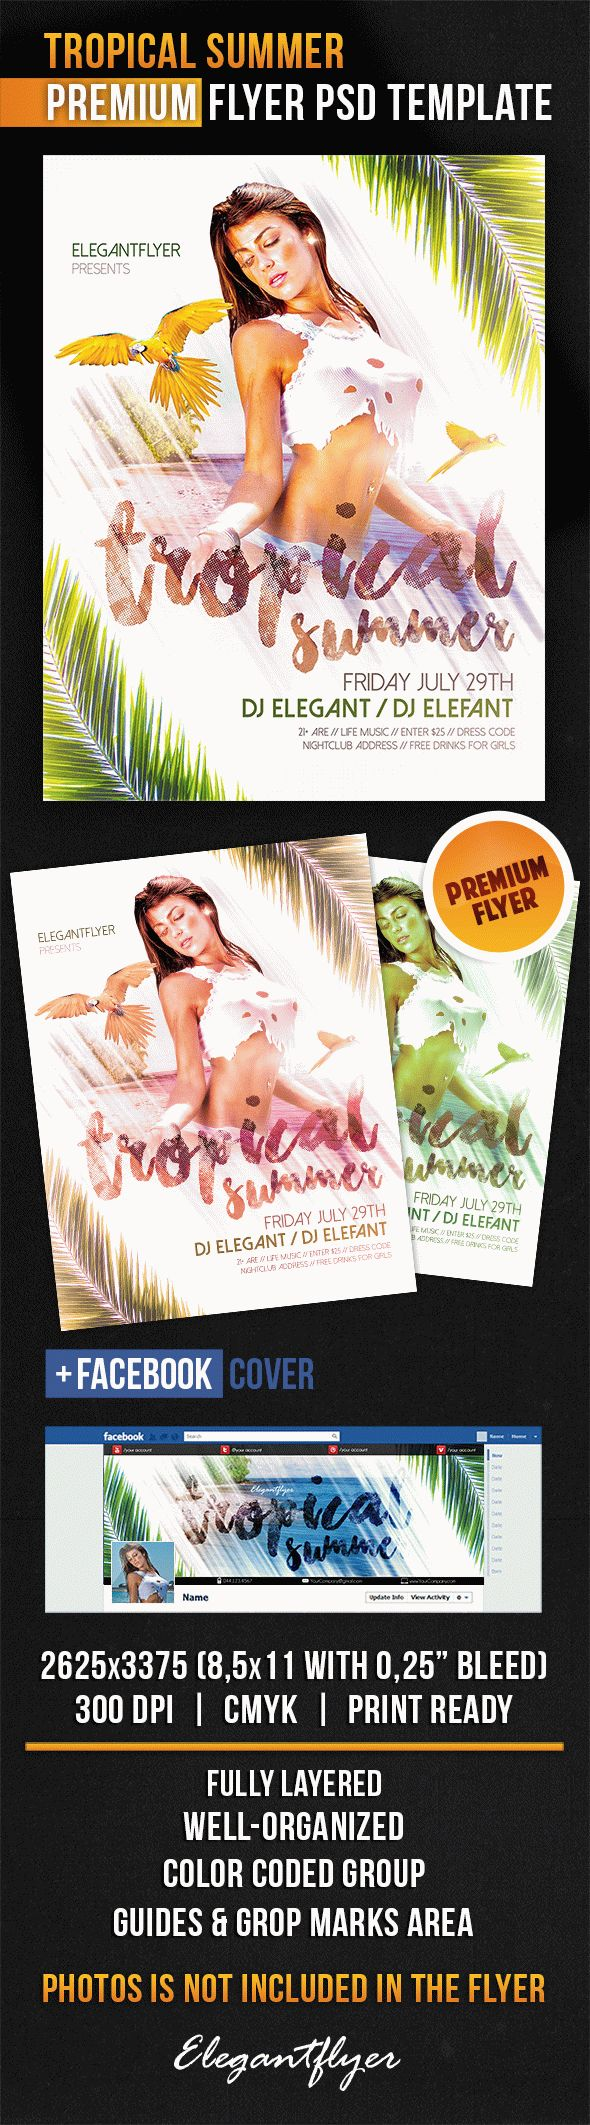 Tropical Summer Flyer in PSD